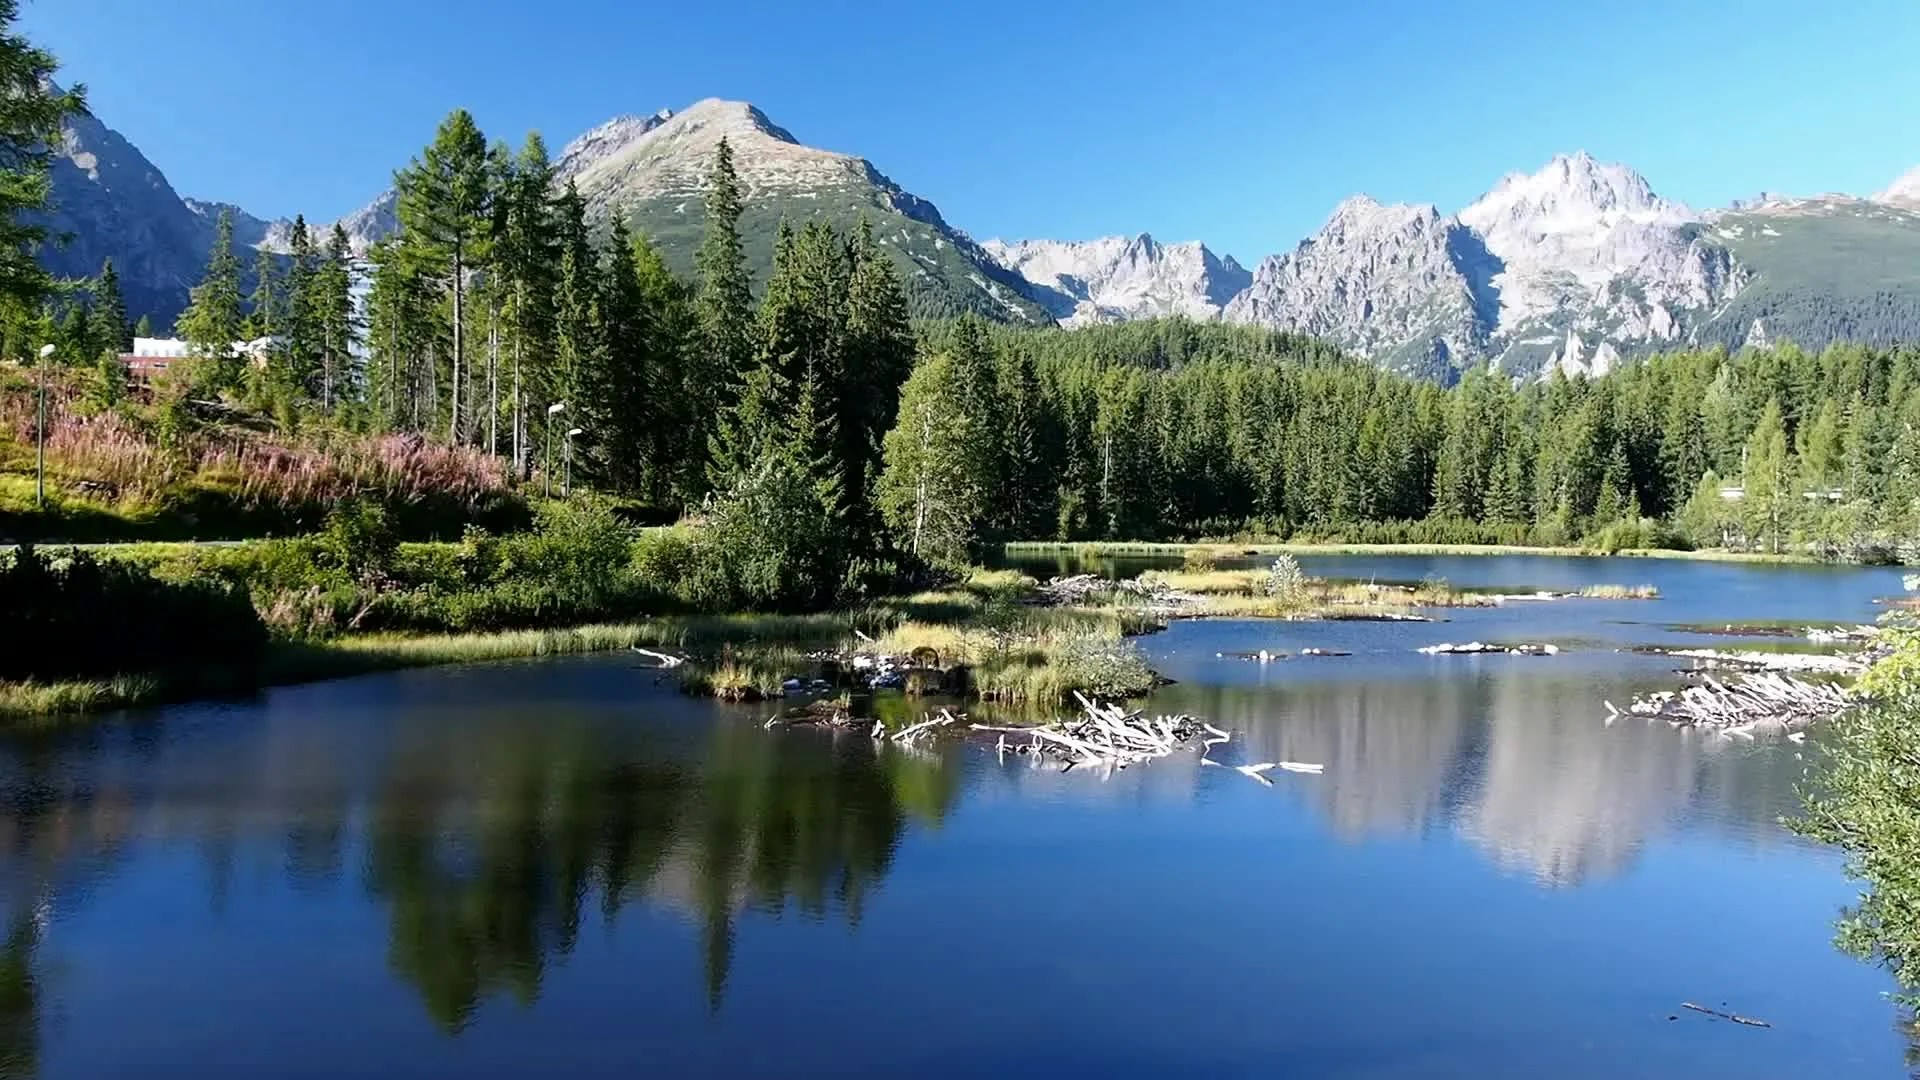 Hd Horse Wallpaper Download Strbske Pleso In Slovak High Tatras At Summer Stock Video